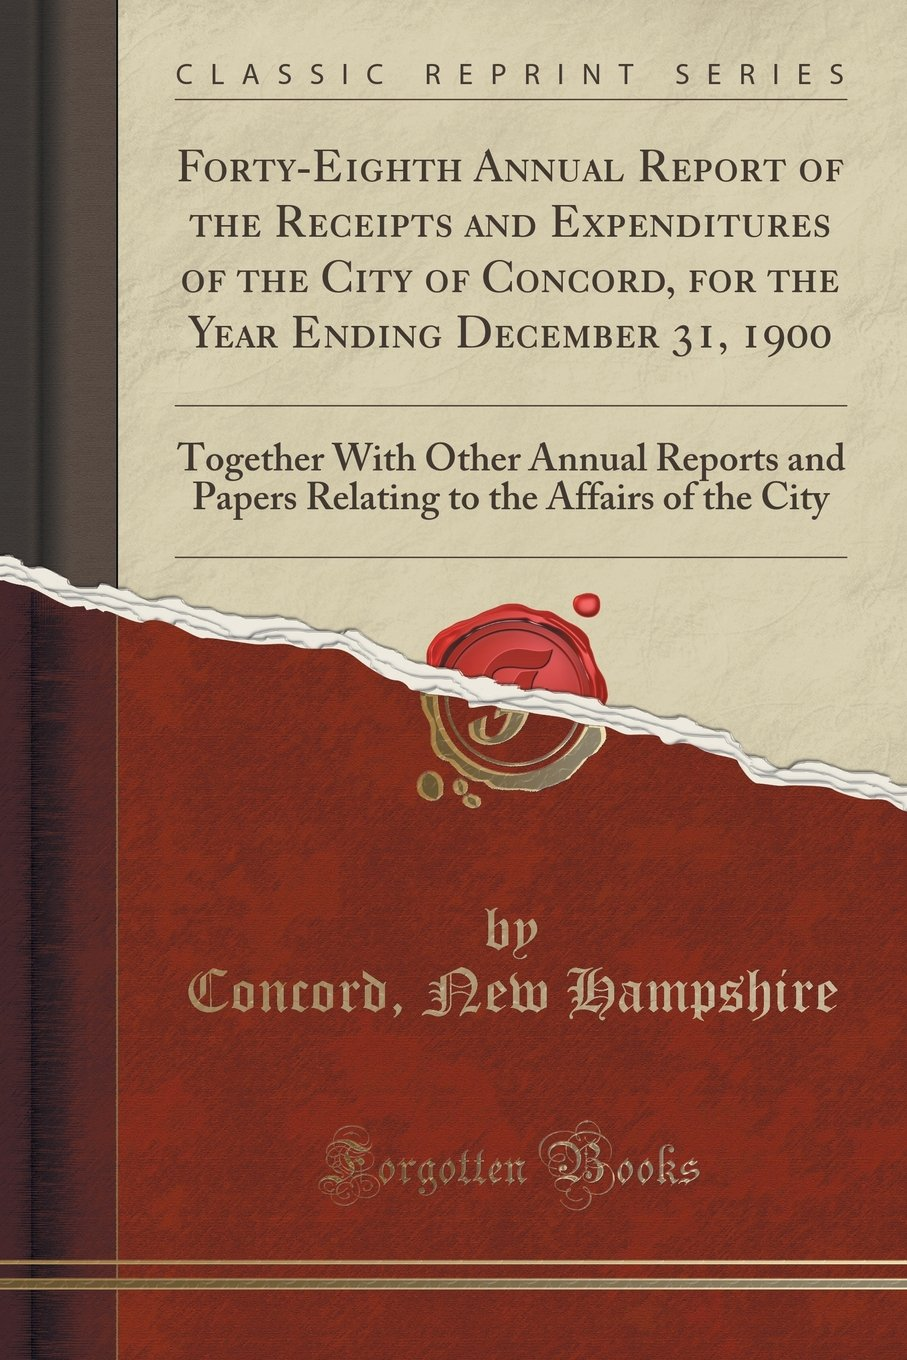 Download Forty-Eighth Annual Report of the Receipts and Expenditures of the City of Concord, for the Year Ending December 31, 1900: Together With Other Annual ... to the Affairs of the City (Classic Reprint) ebook